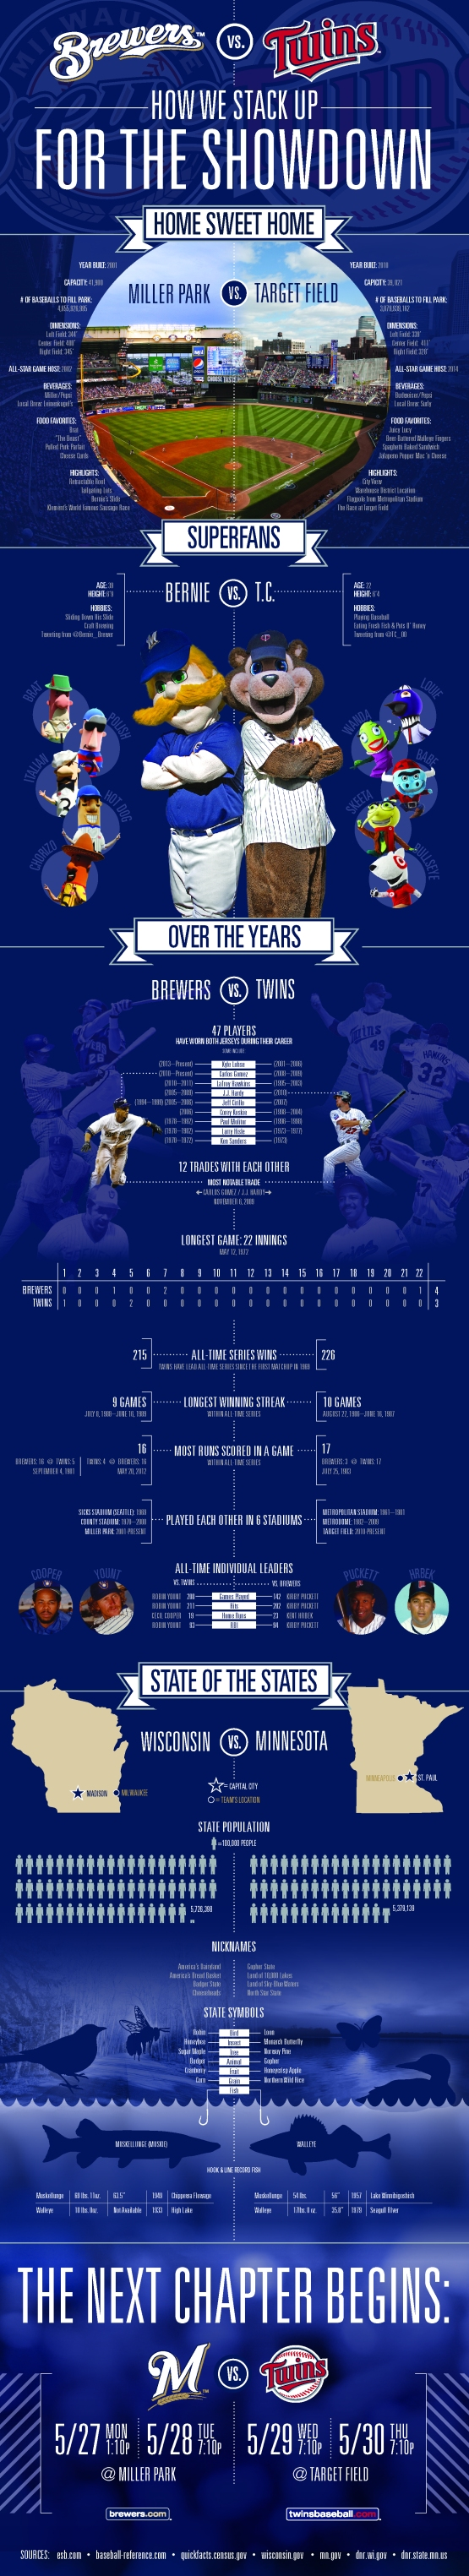 MB-13 Brewers vs Twins-Large Infographic Graphic-FINAL